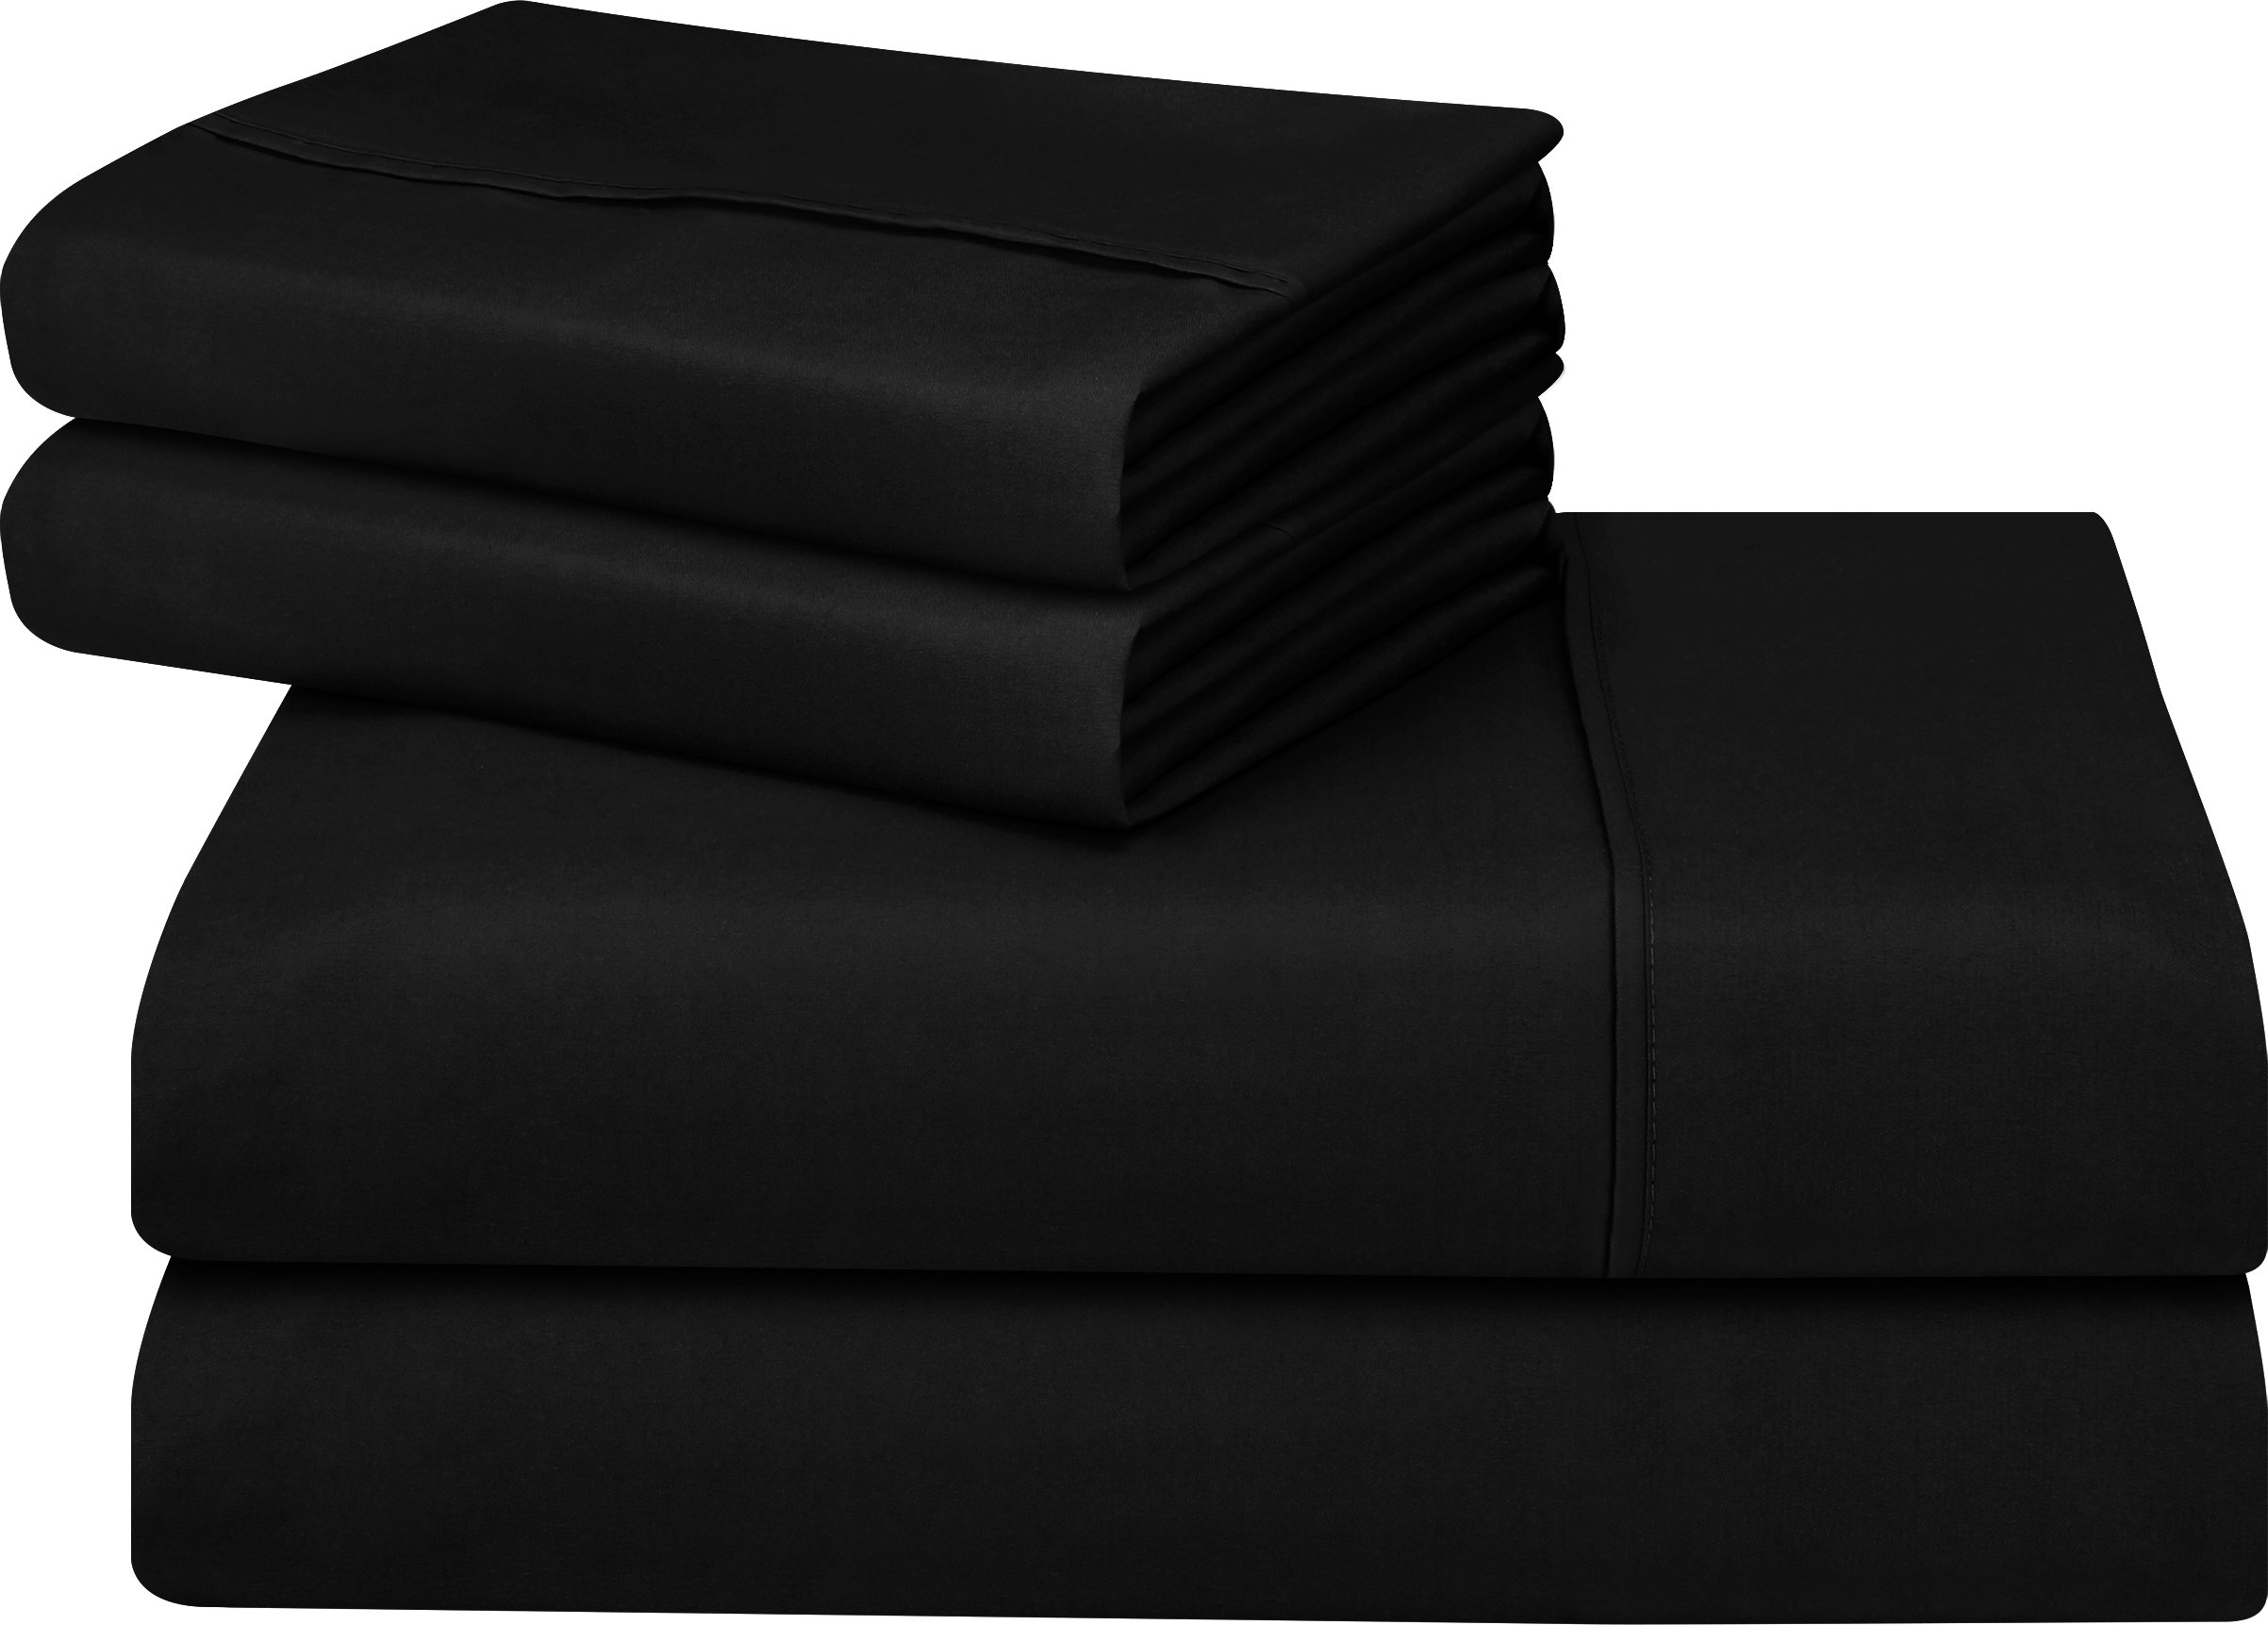 Utopia Bedding Soft Brushed Microfiber Wrinkle Fade and Stain Resistant 4-Piece Queen Bed Sheet Set - Black by Utopia Bedding